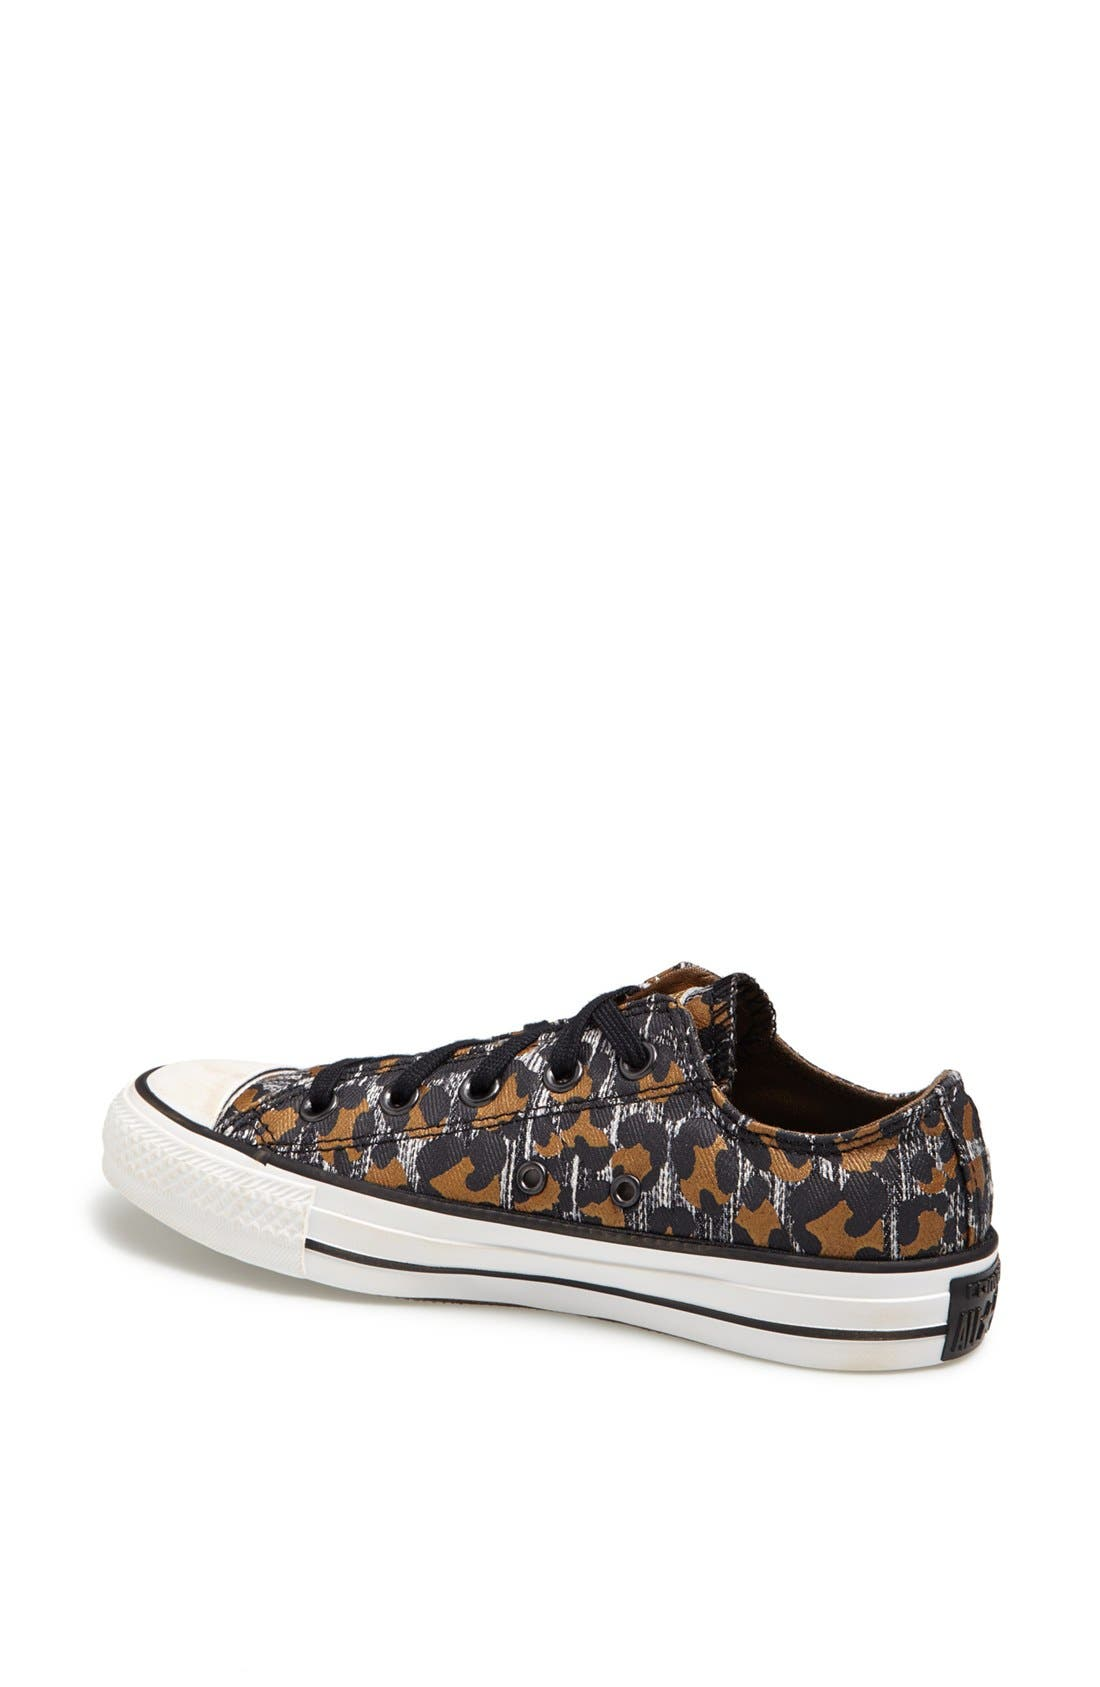 Alternate Image 2  - Converse Chuck Taylor® All Star® Low Print Sneaker (Women)